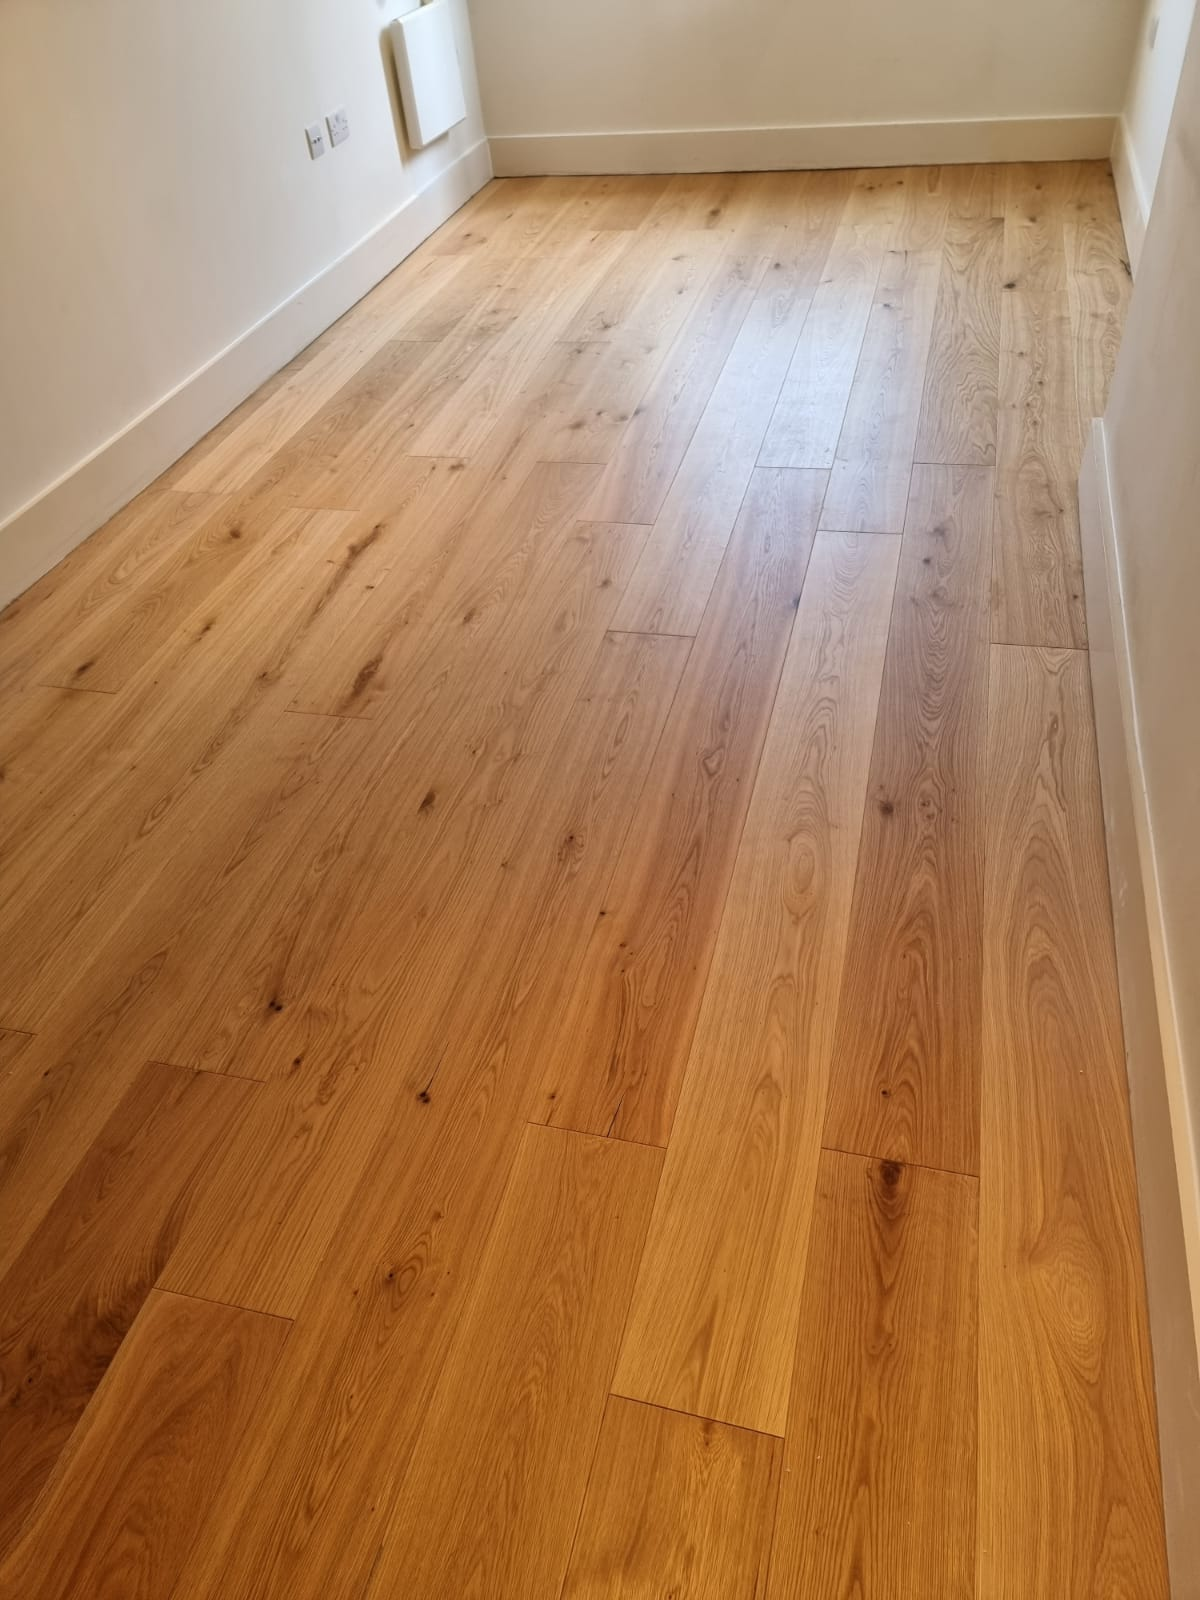 Xylo R22 Wood Flooring in Docklands 2